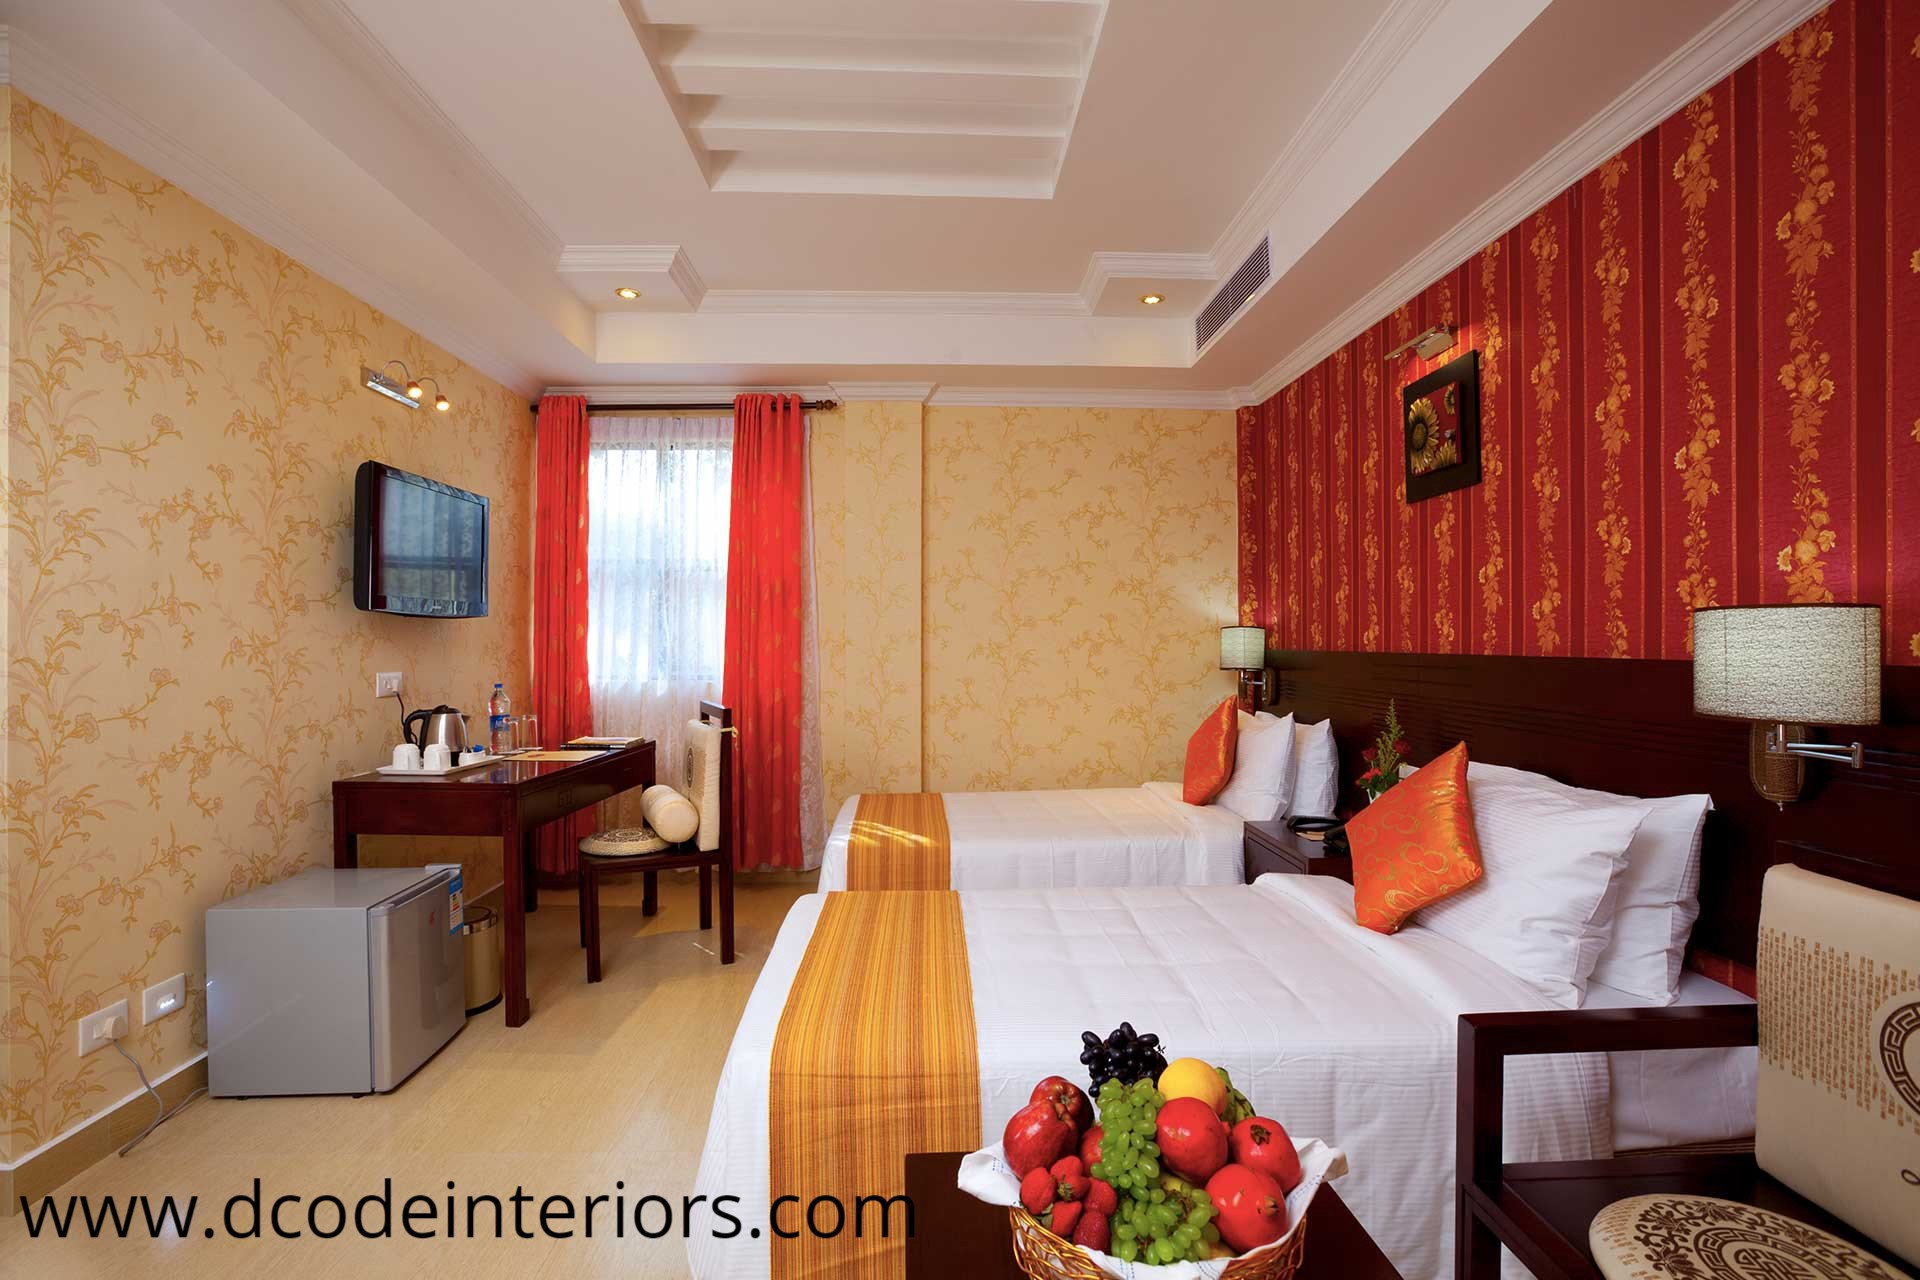 Select Best Choice For Interior Desginer Services In Kochi